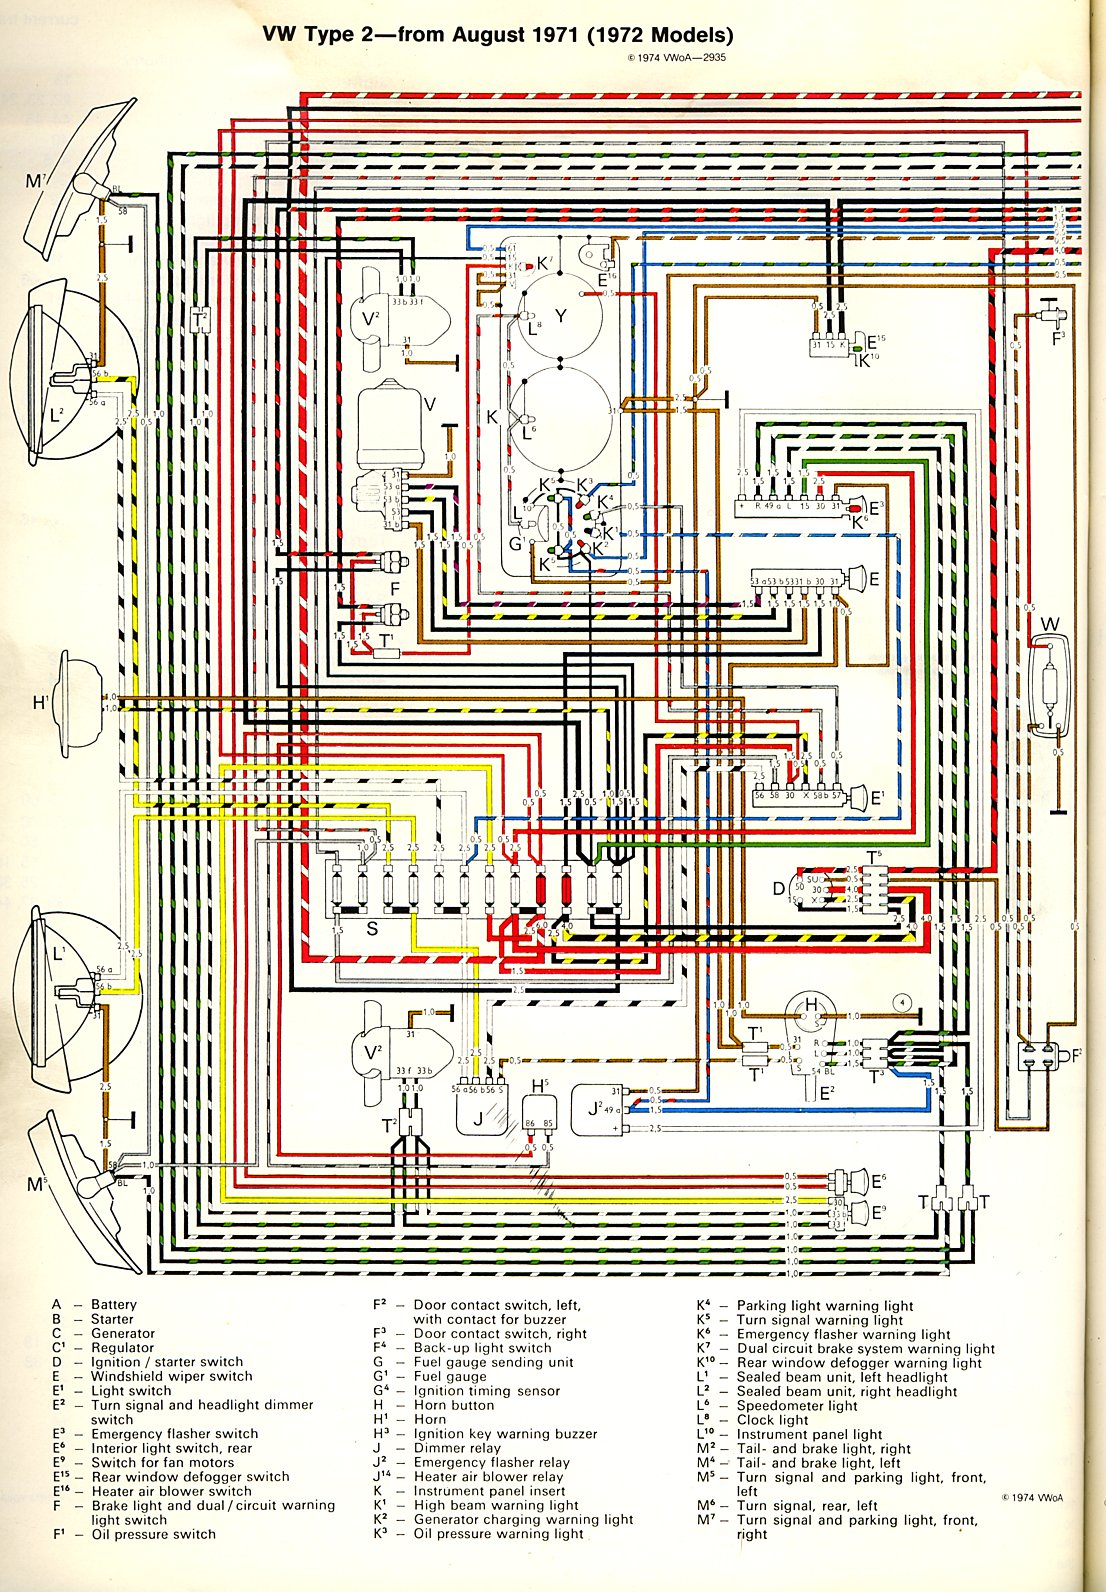 [EQHS_1162]  1972 Bus Wiring diagram | TheGoldenBug.com | International Bus Wiring Diagrams |  | TheGoldenBug.com